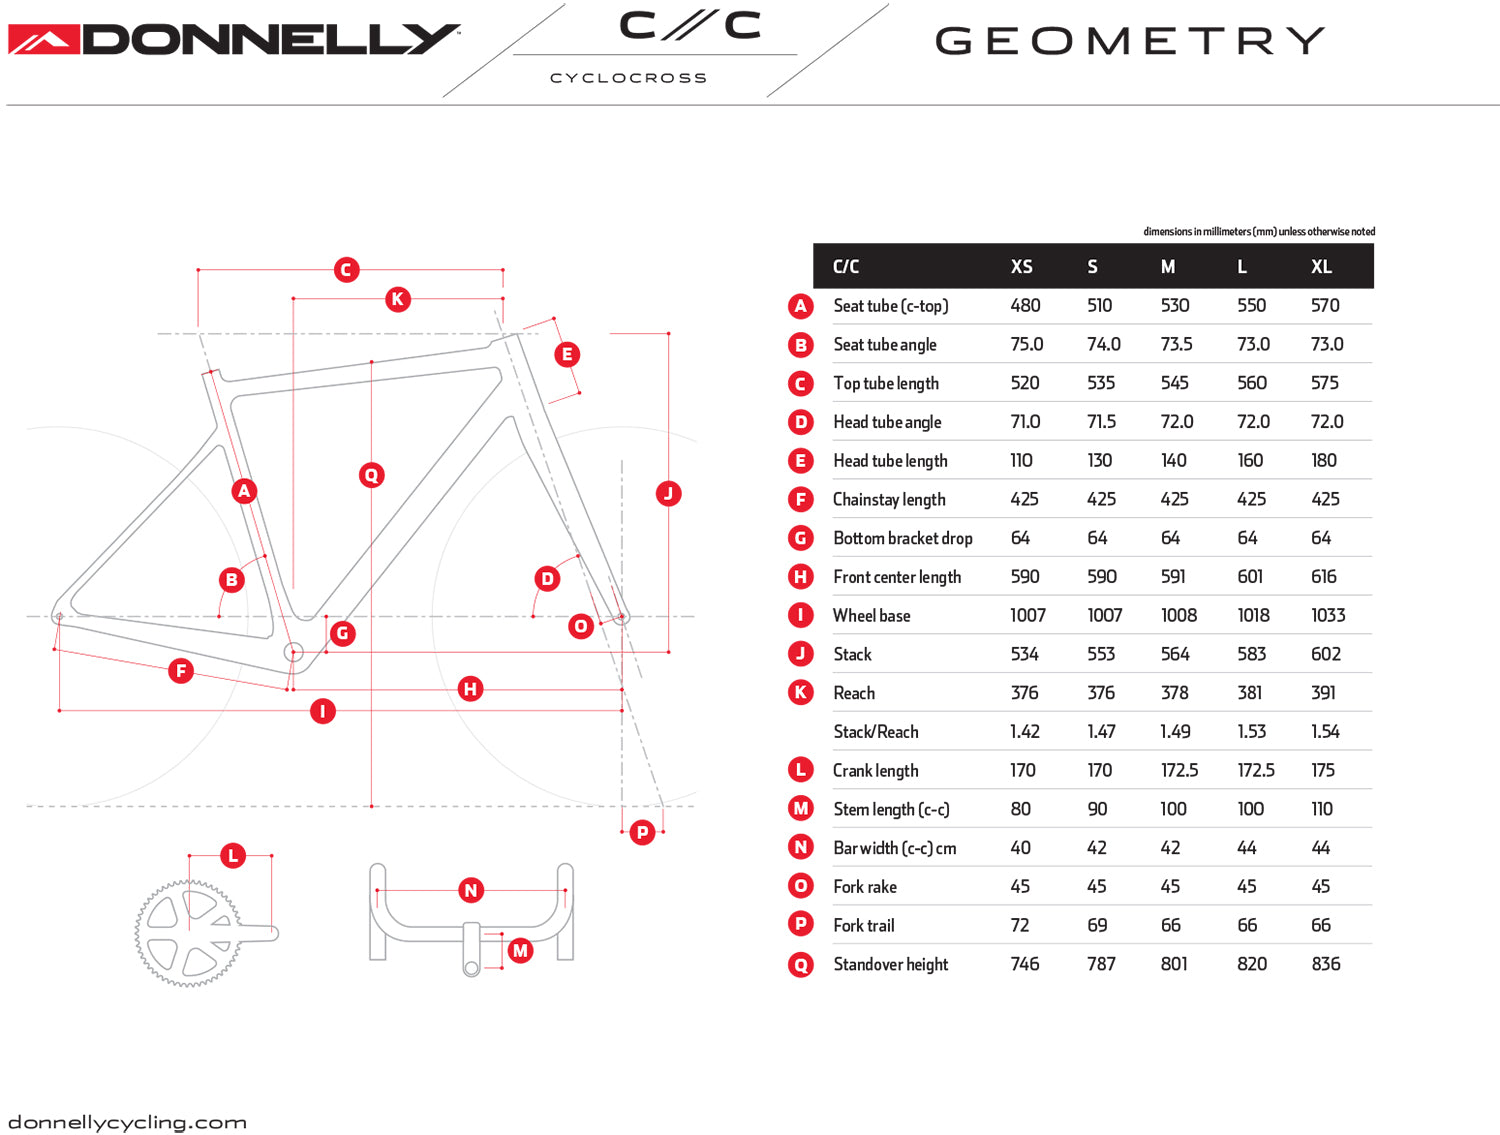 Donnelly CC Cyclocross Bike Geometry Chart